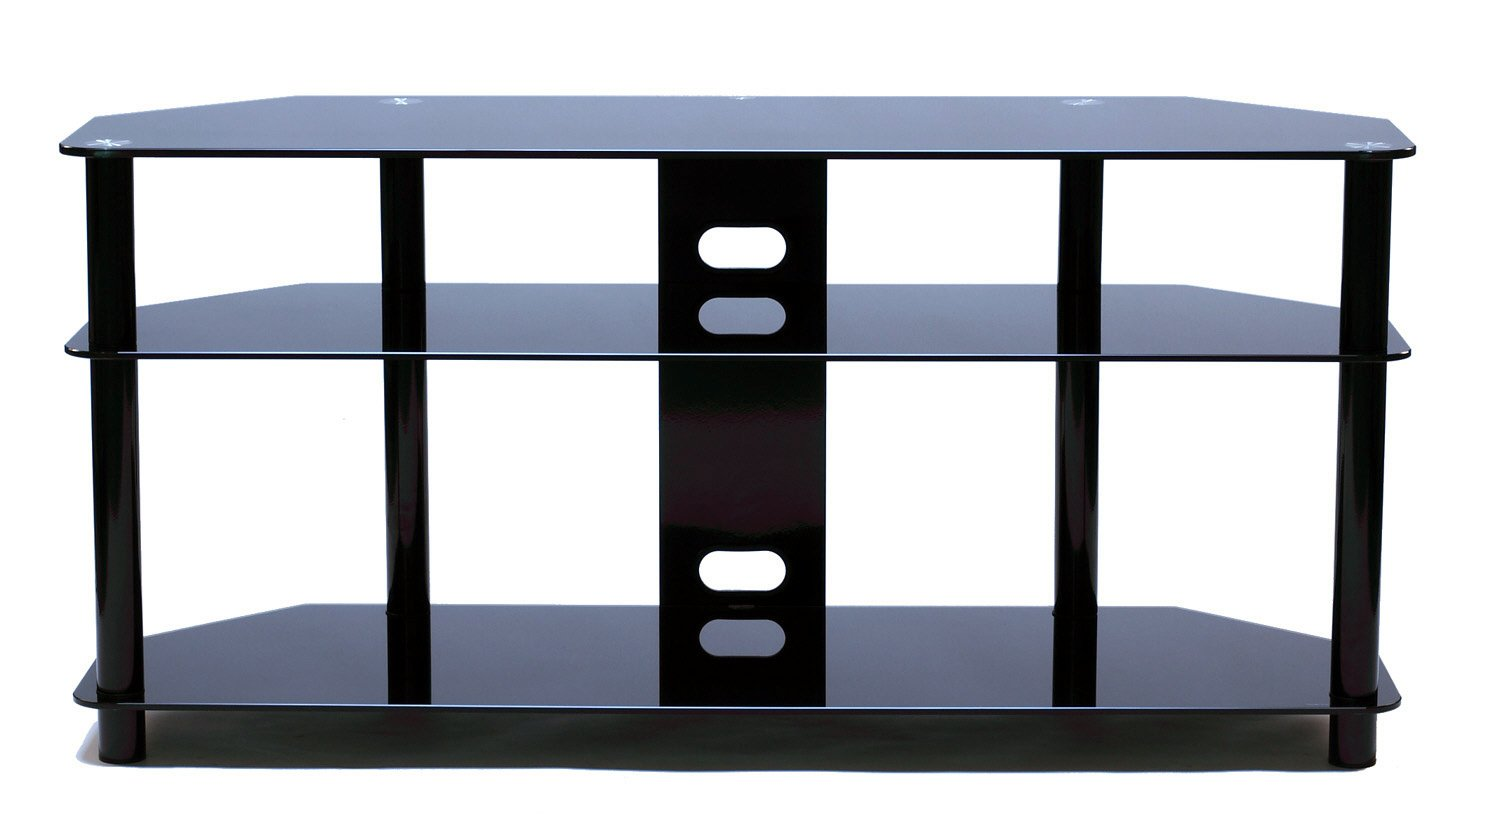 TransDeco LCD/LED TV Stand with Casters for 30-60 inch Flat Panel LCD Television